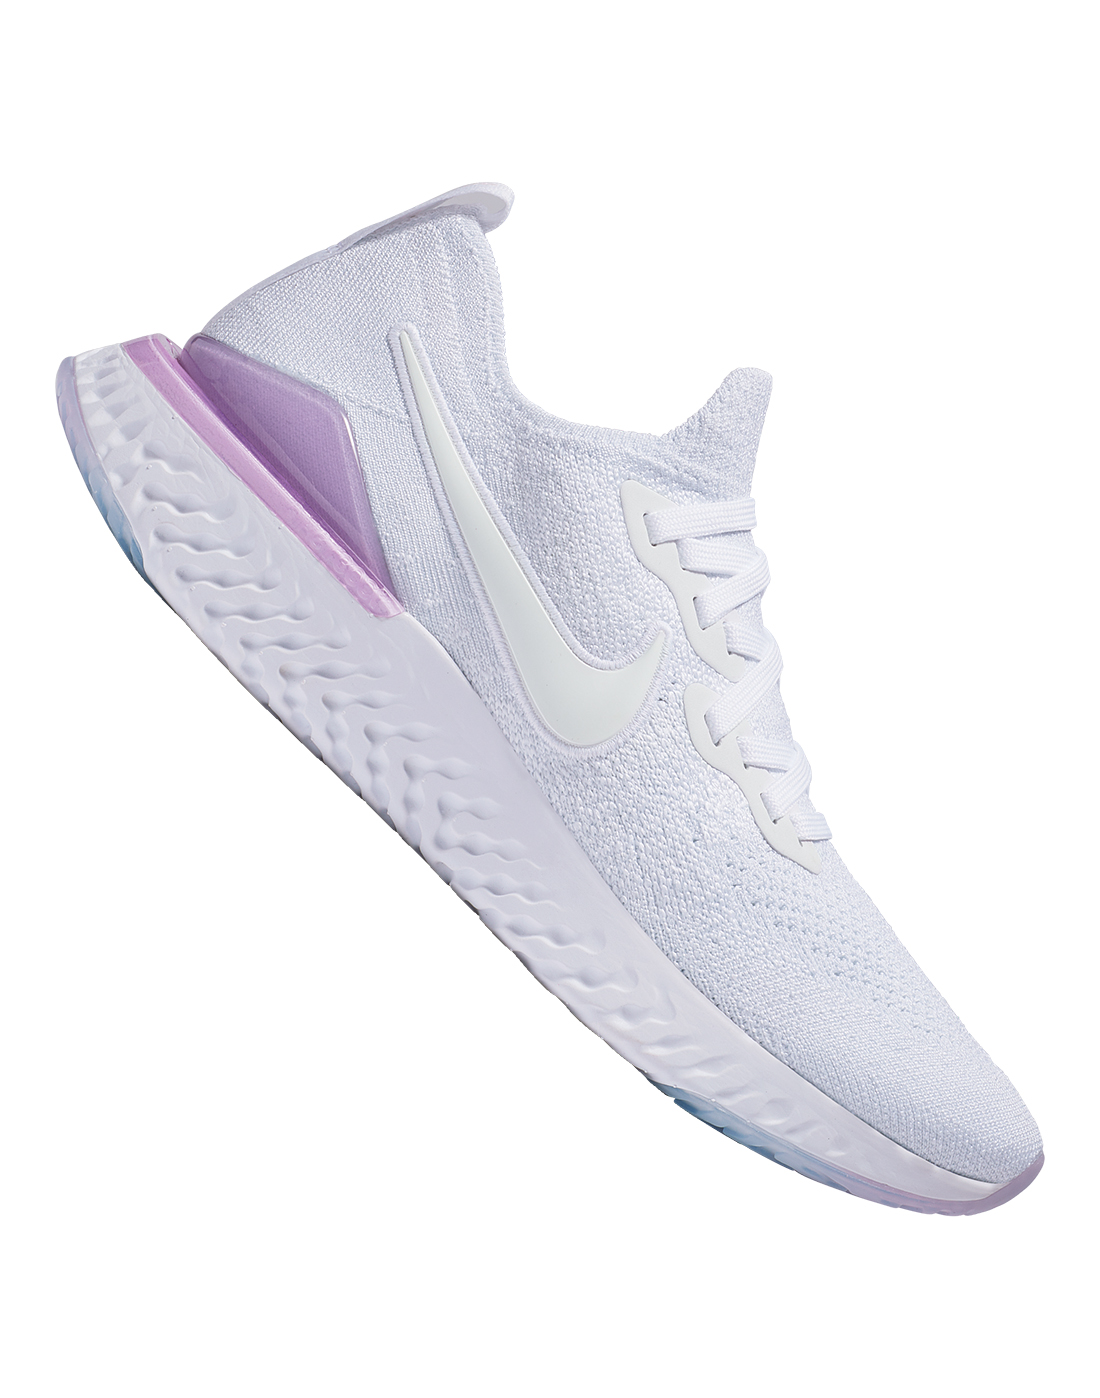 7ce42e7f53a8e Women s White   Pink Nike Epic React